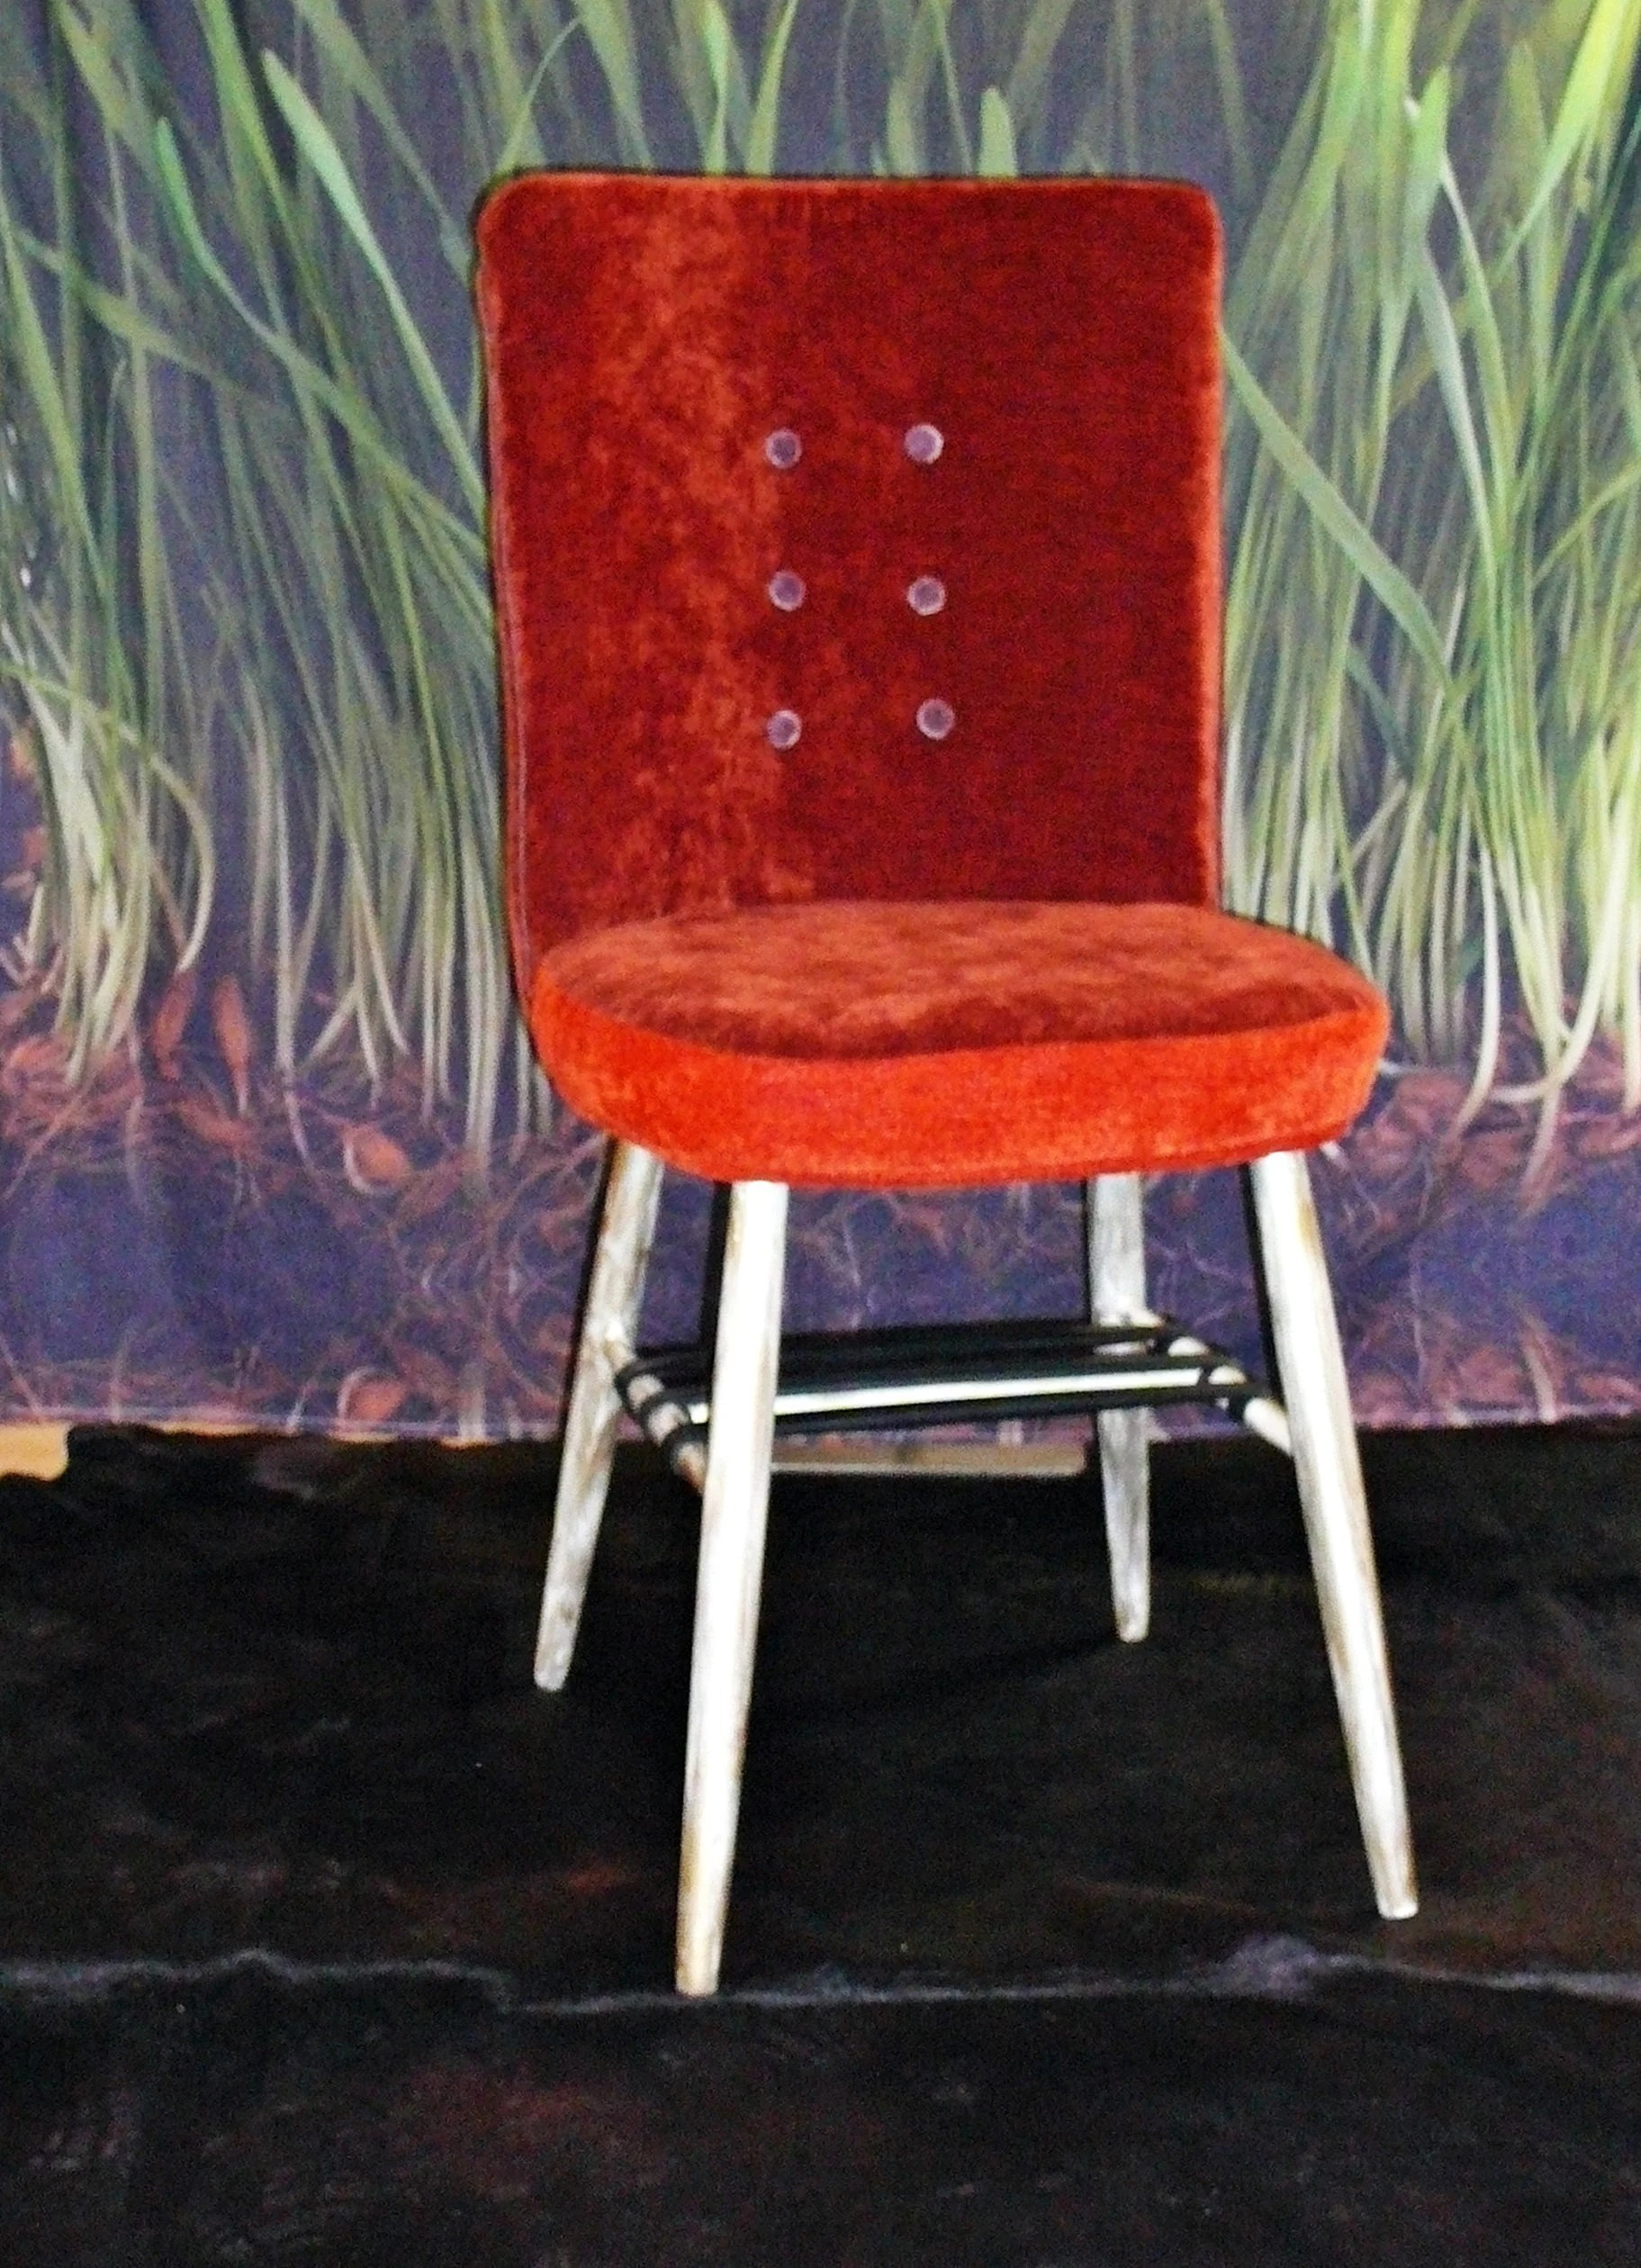 Möbelbezugsstoffe Upcycling Chair Upcycled Dining Chair Orange Dining Chair Chair For Dining Room Orange Upholstery Chair